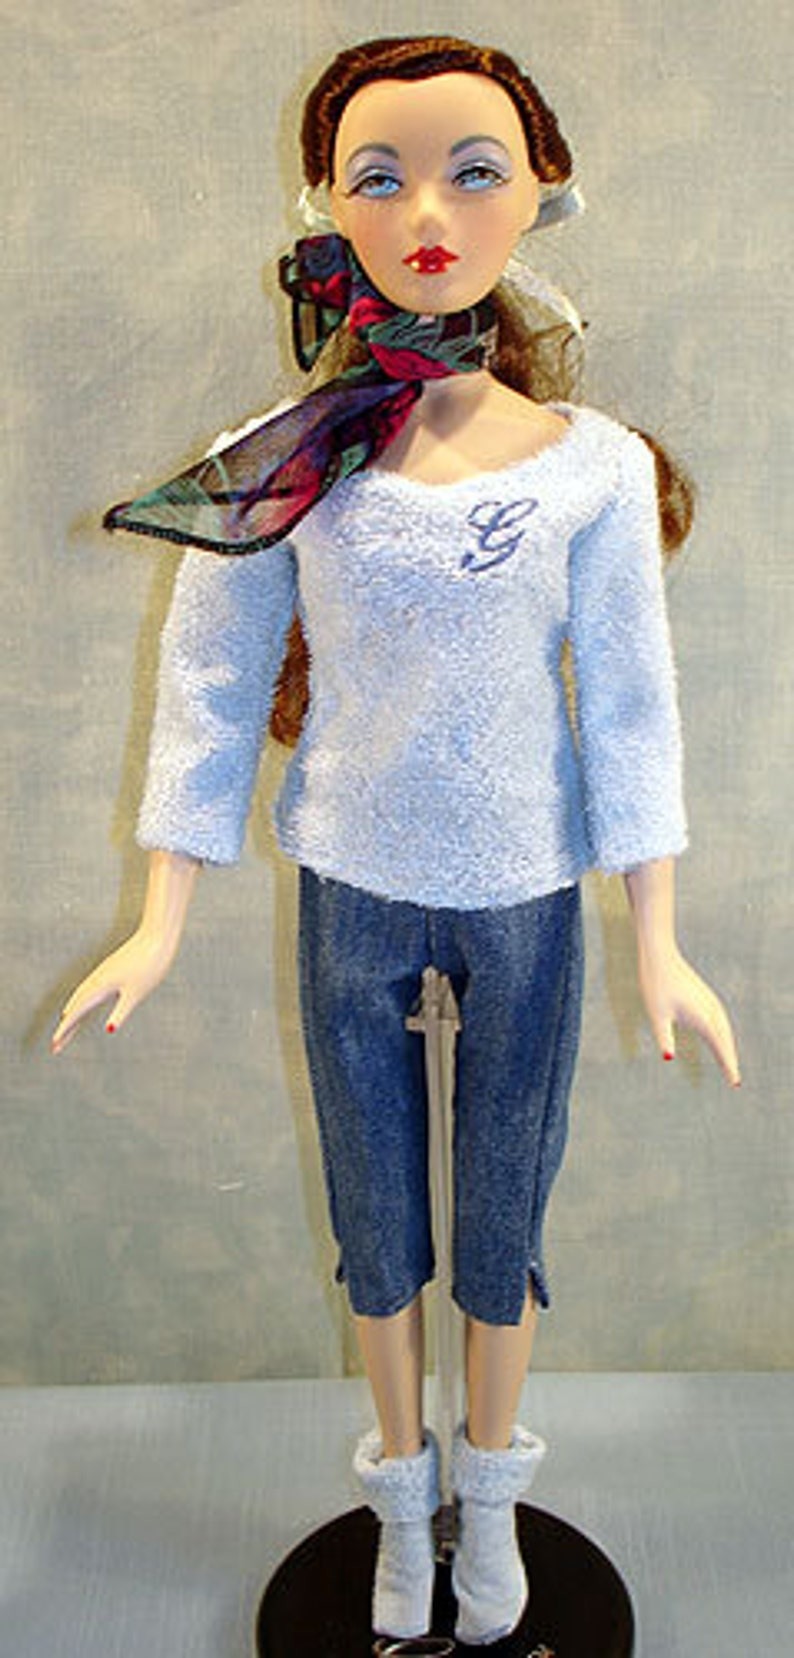 15-16 Inch Fashion Doll Clothes  Blue G Sweater and Jeans image 0